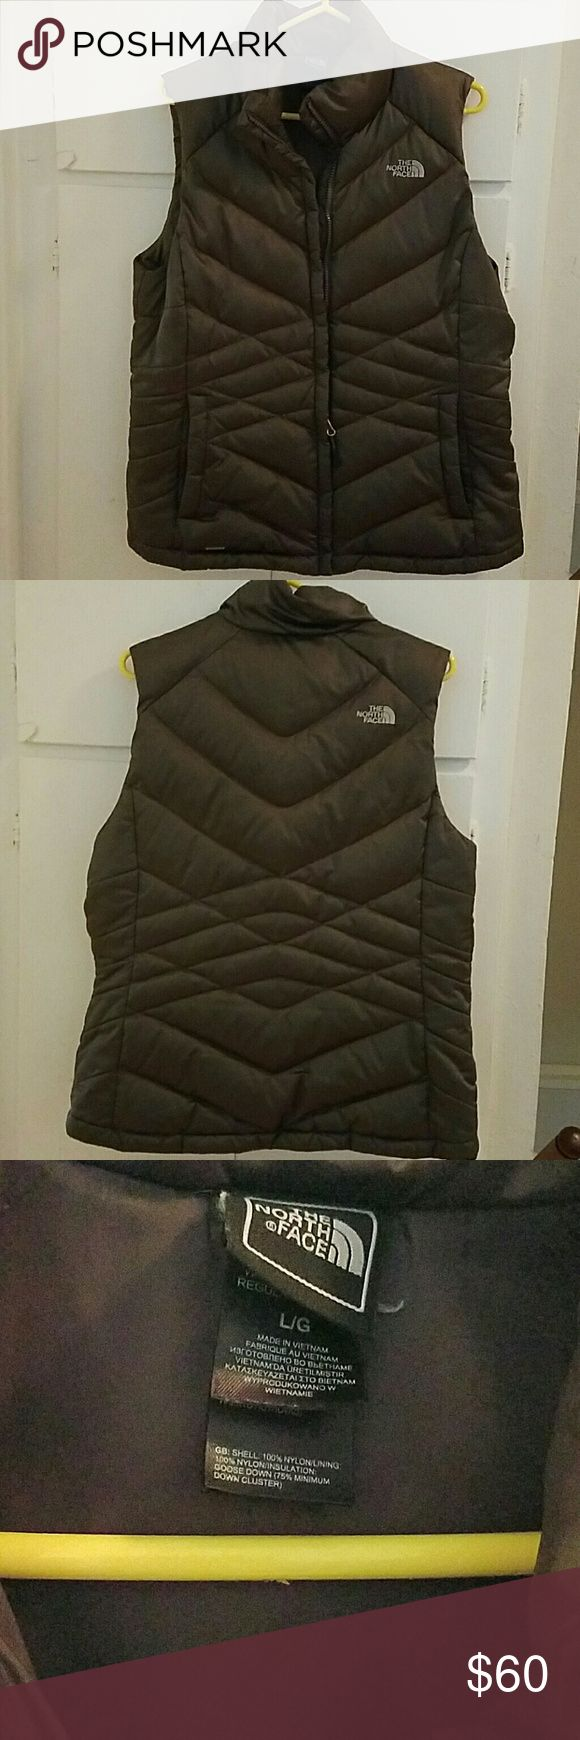 The North Face vest 550 Good condition north face vest 550 The North Face Jackets & Coats Vests